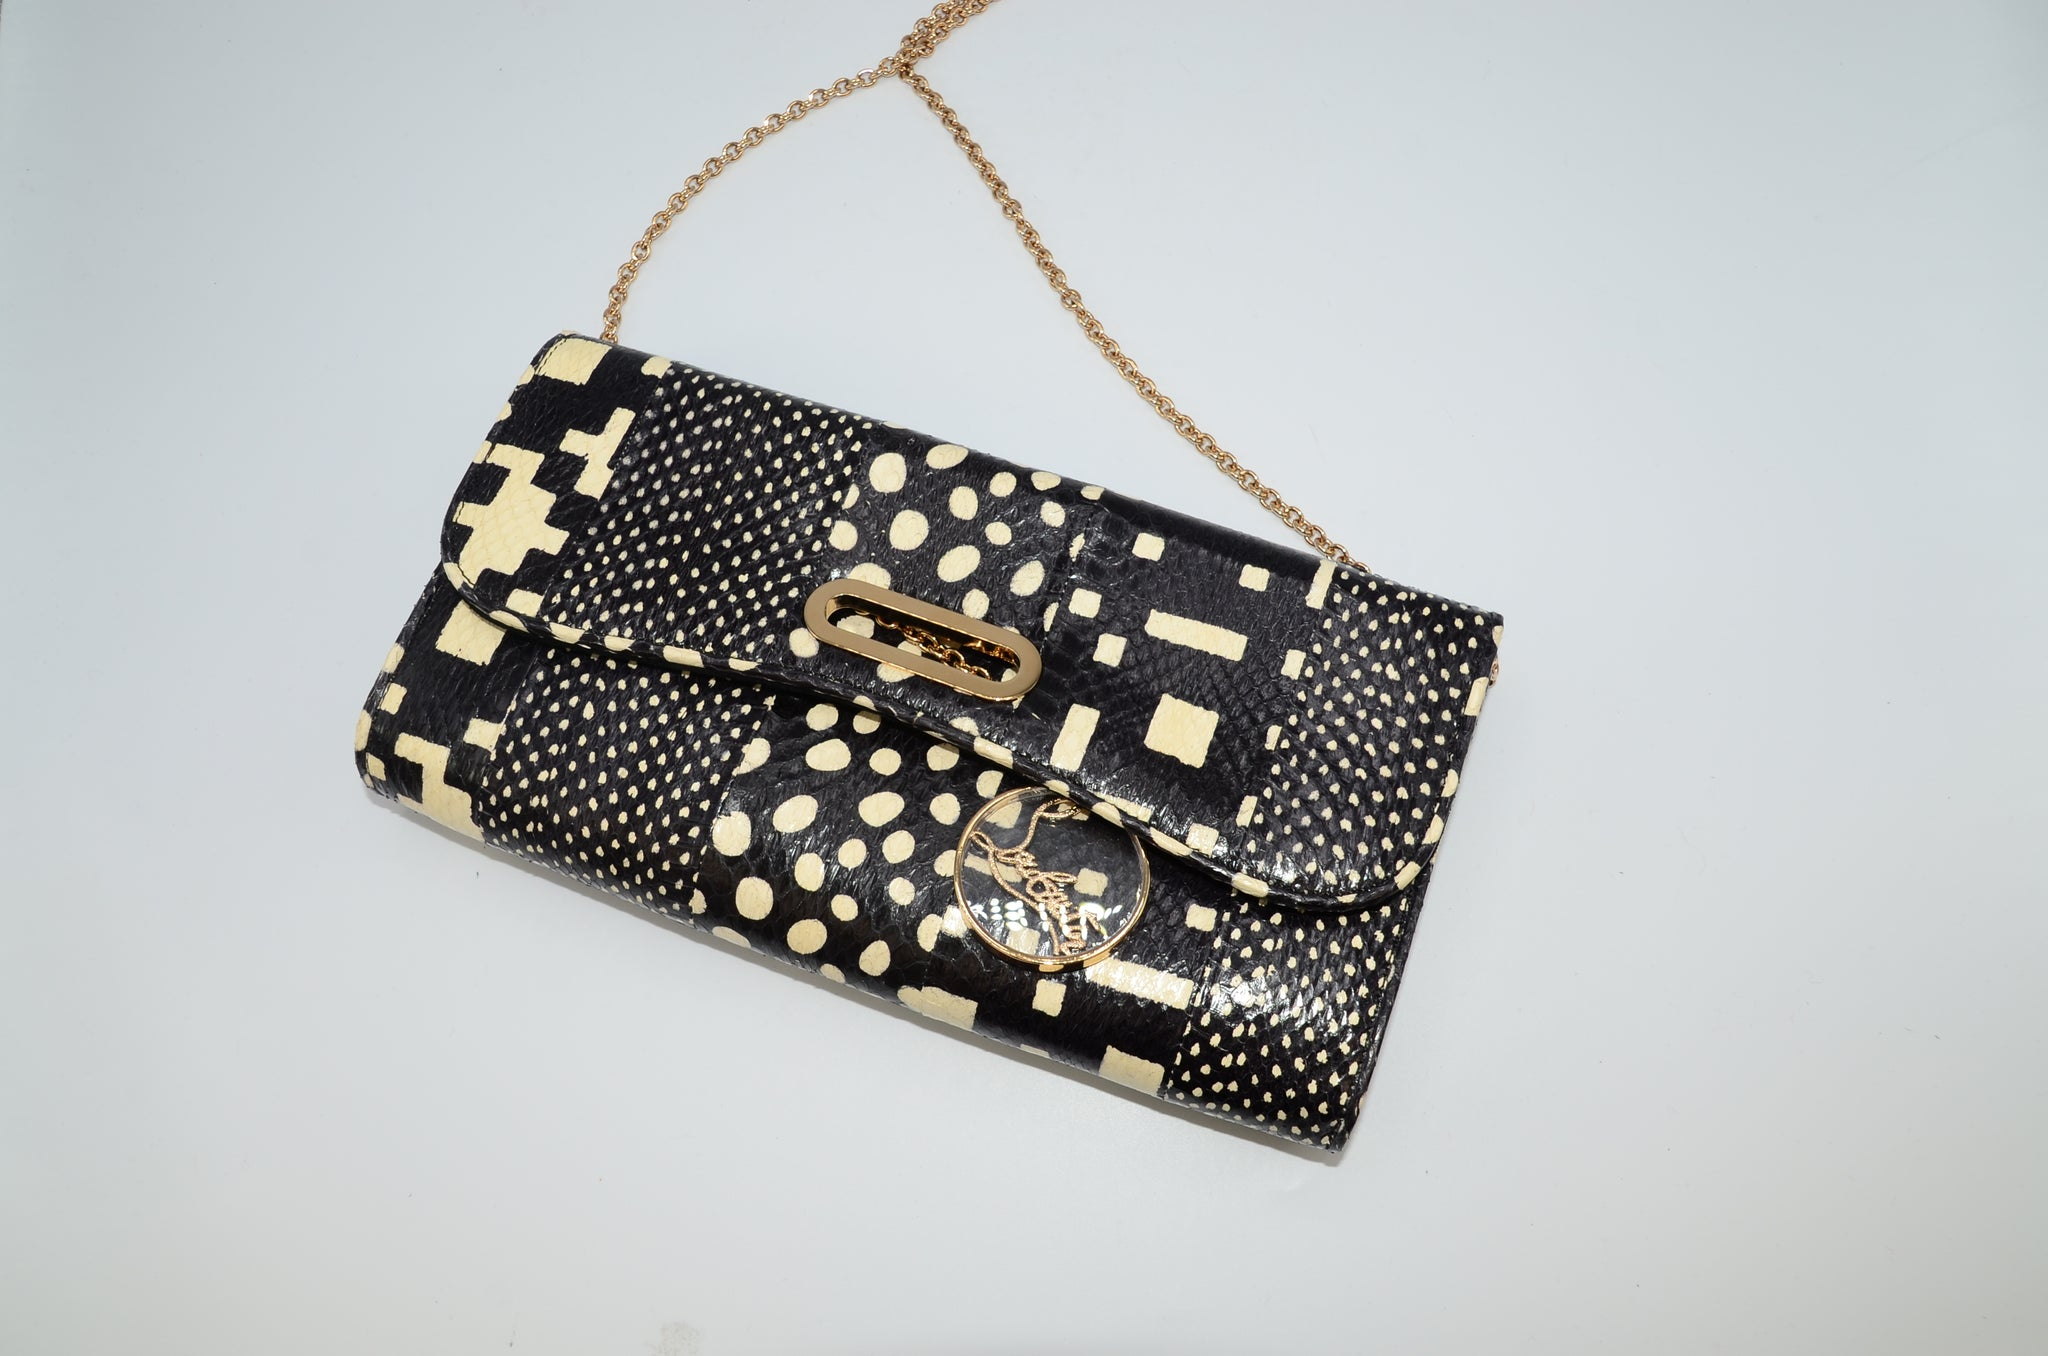 Christian Louboutin Riviera Clutch - Iconics Preloved Luxury